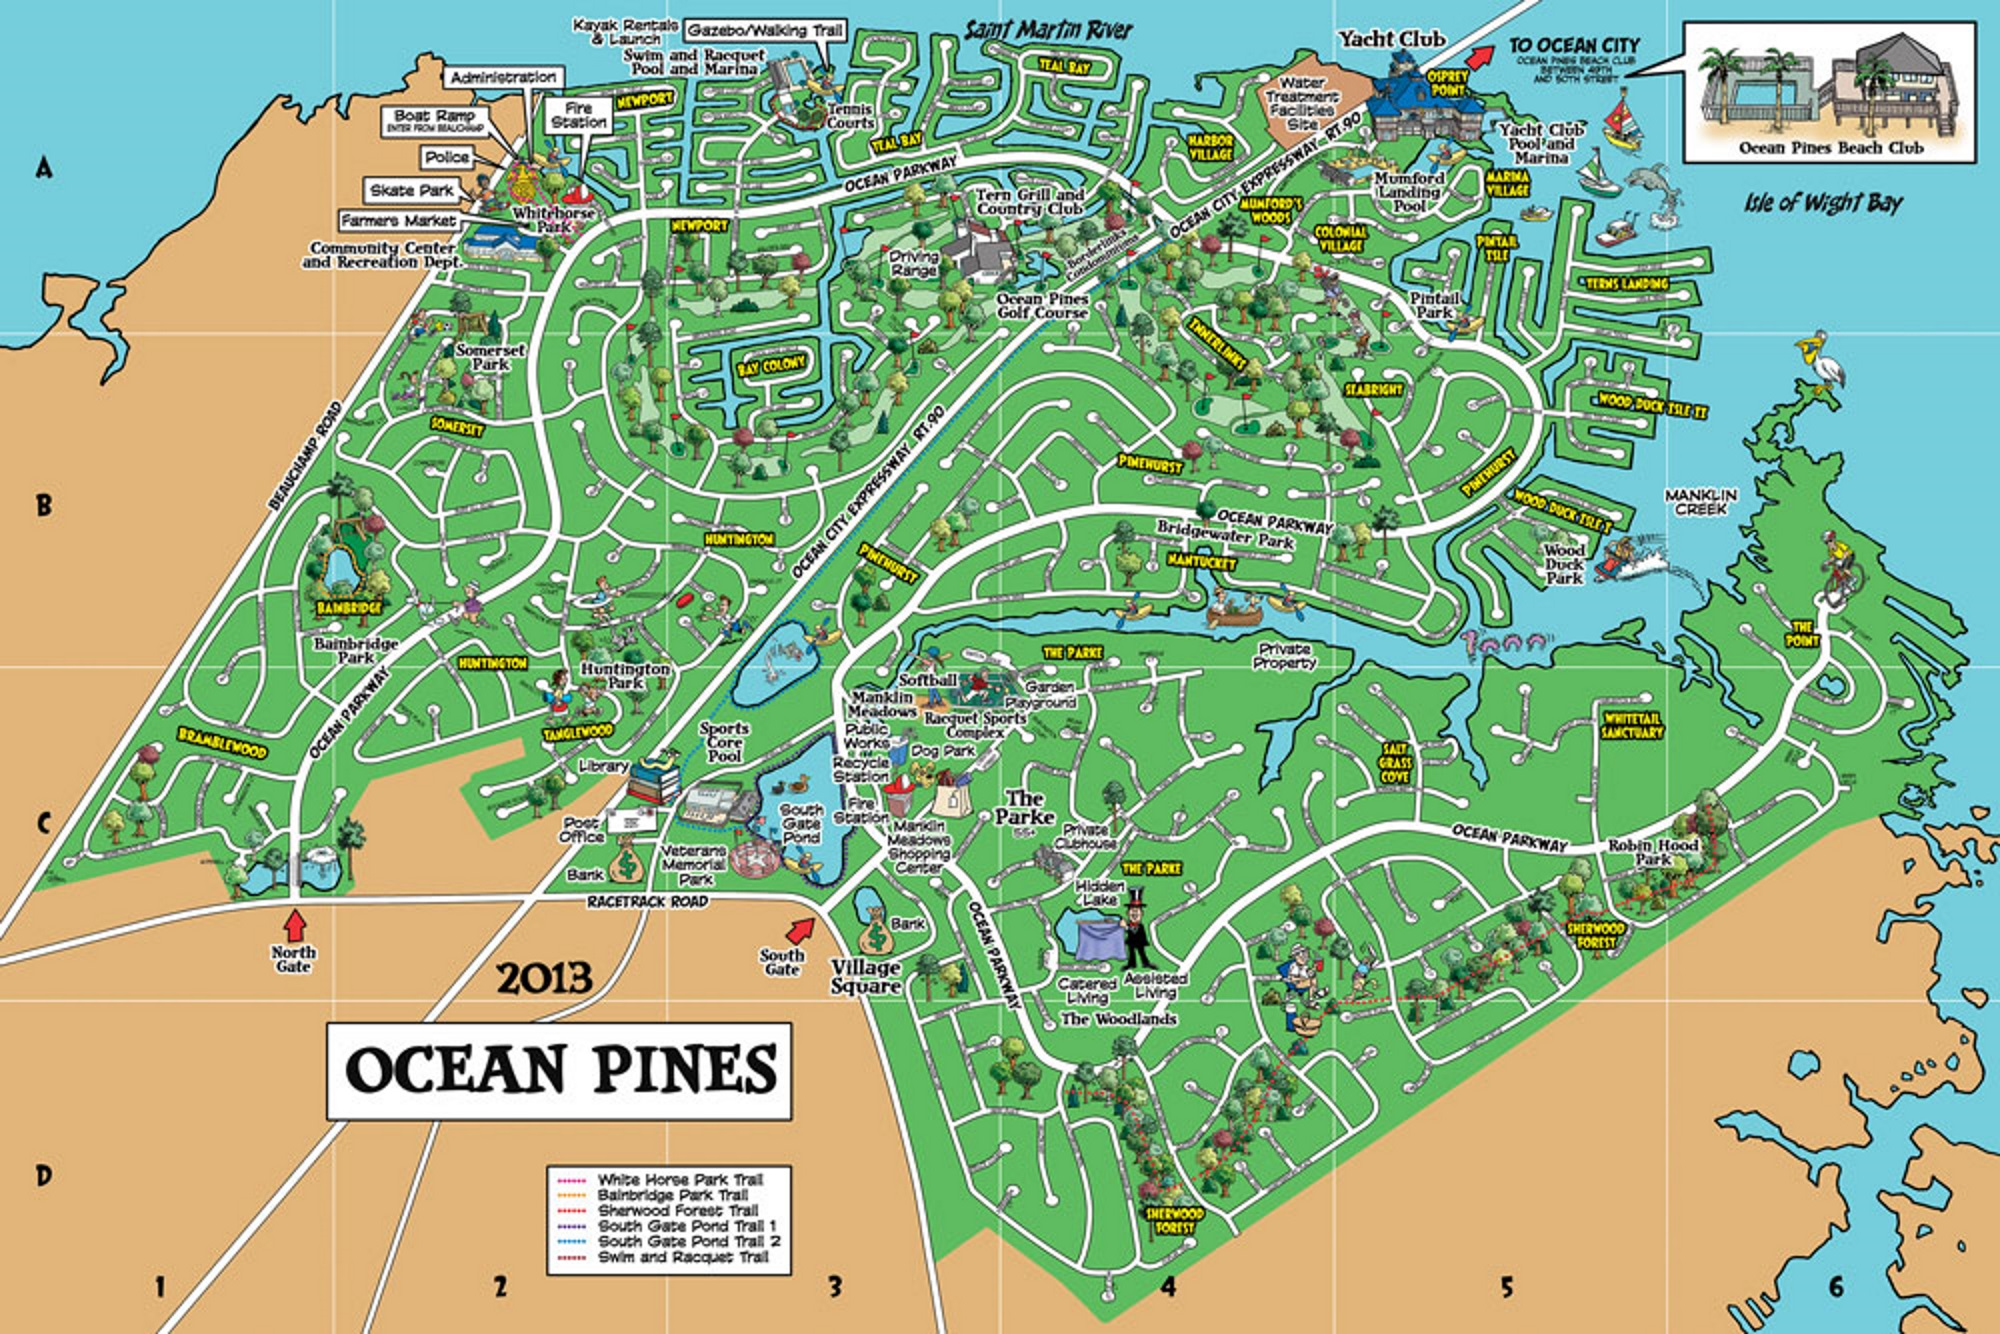 Ocean Pines Map | Ocean City & Ocean Pines MD Homes on bridgeville md map, hamilton md map, cape charles md map, cape may md map, saint michaels md map, salisbury md map, severna park md map, oxford md map, rockford md map, ocean city maryland, city of newark nj ward map, seaford md map, fenwick island de map, hotels in colorado springs map, somerset md map, u.s. waterways map, virginia md map, mountains to sea trail nc map, clifton md map,